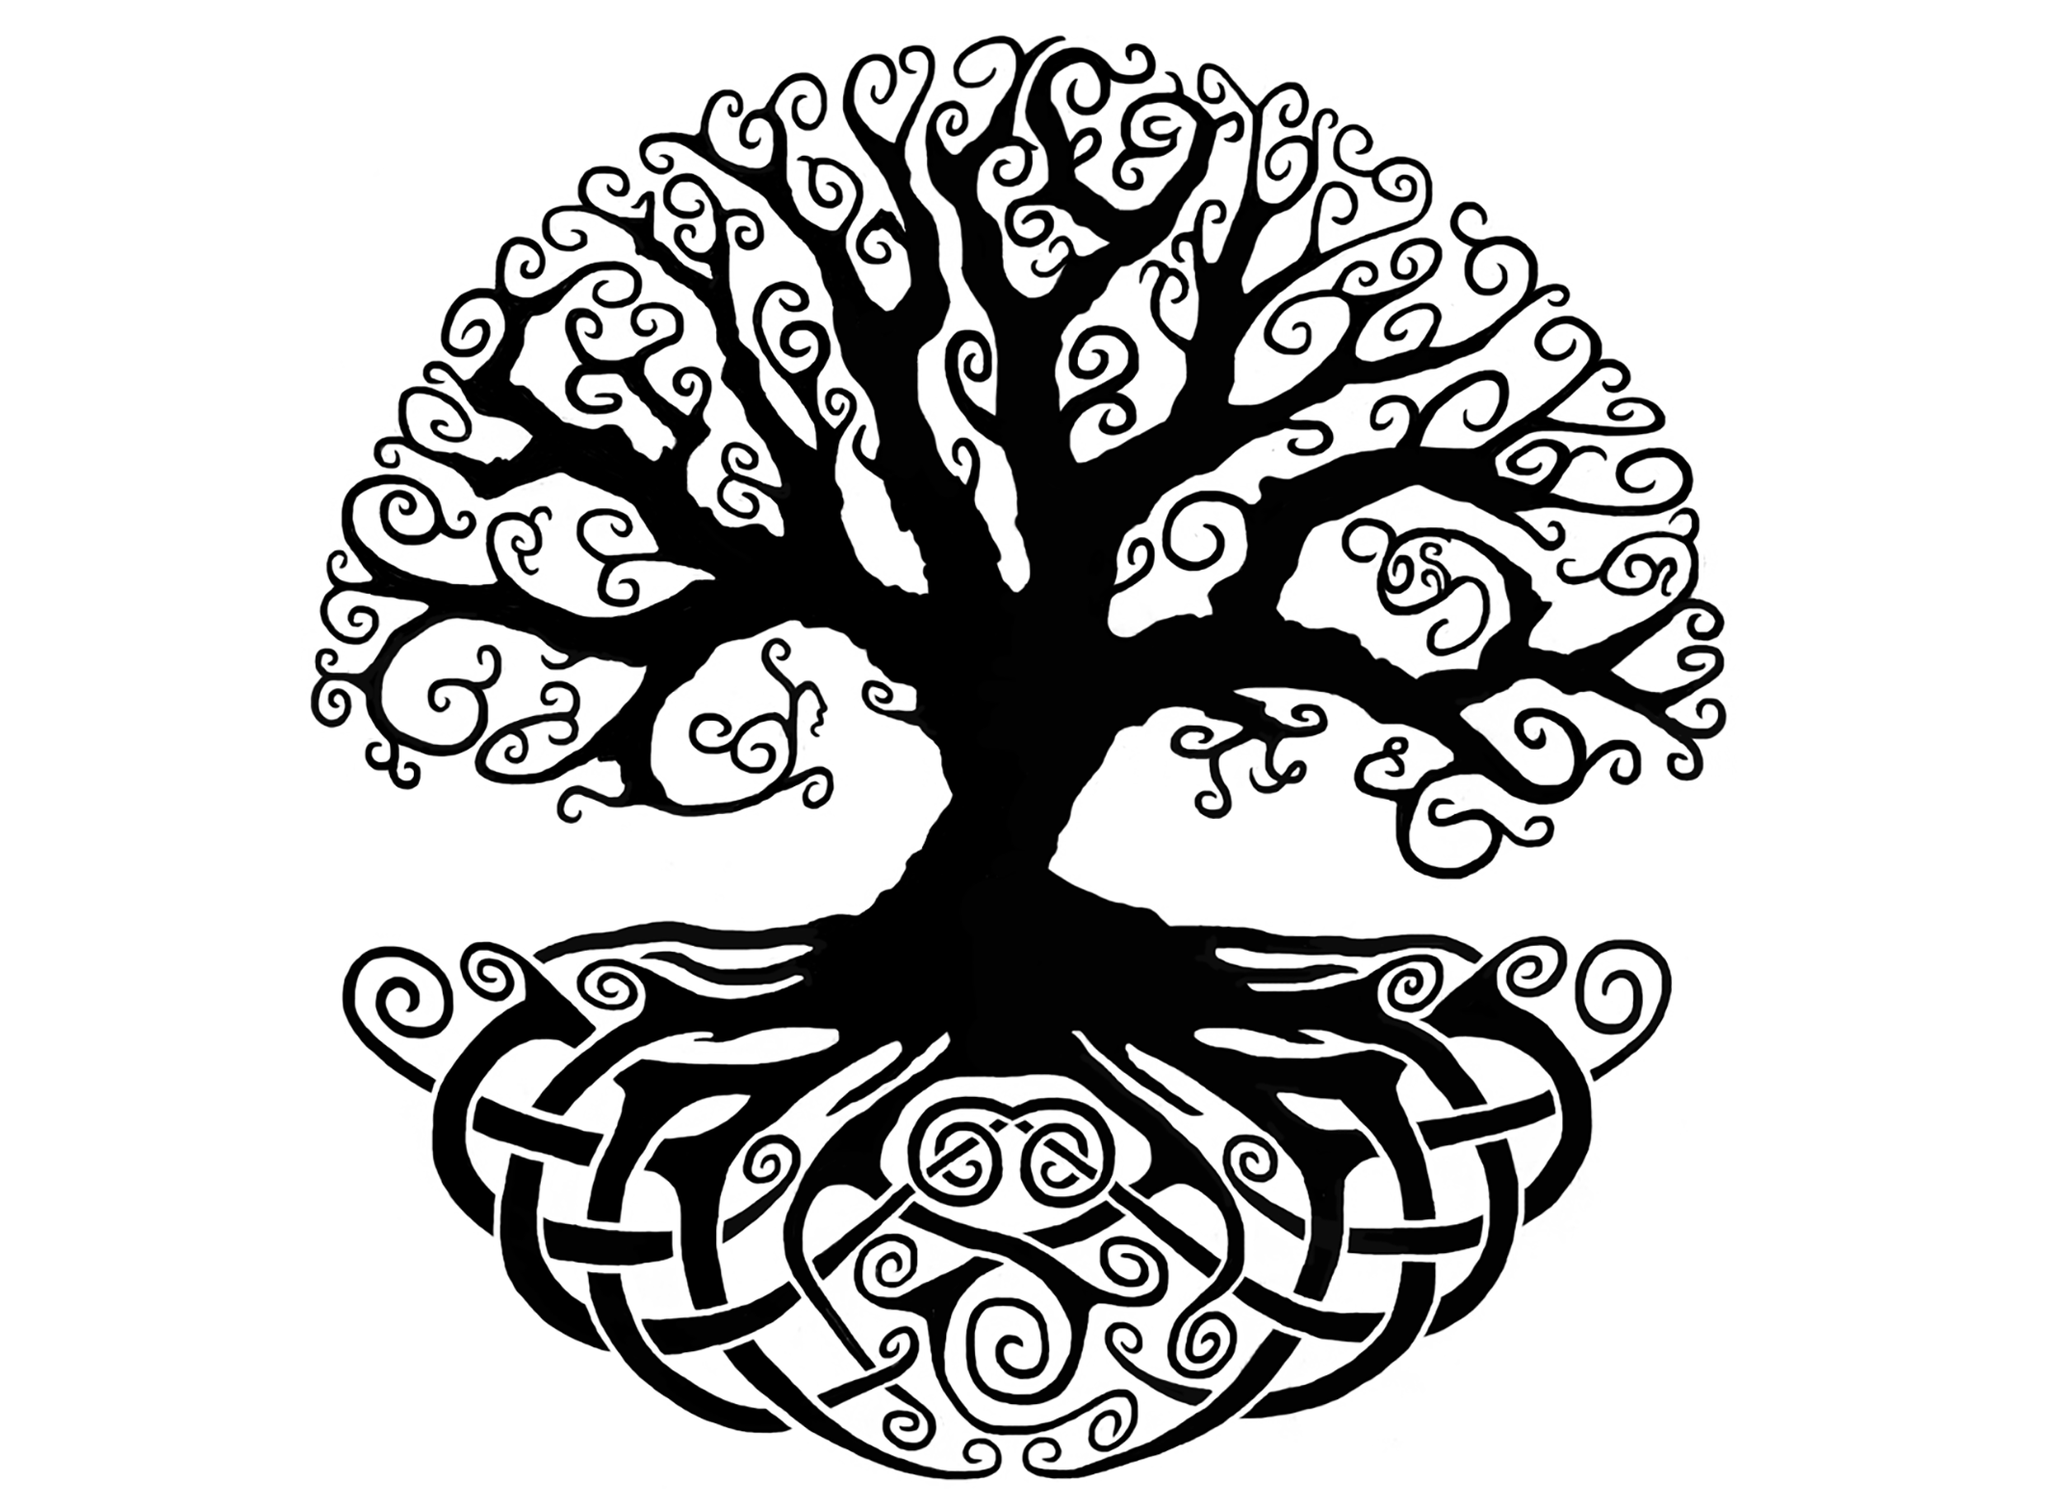 Swirl Wall Stickers Celtic Knot Tree Of Life 4 Quot Black 636 Or White 915 Fused